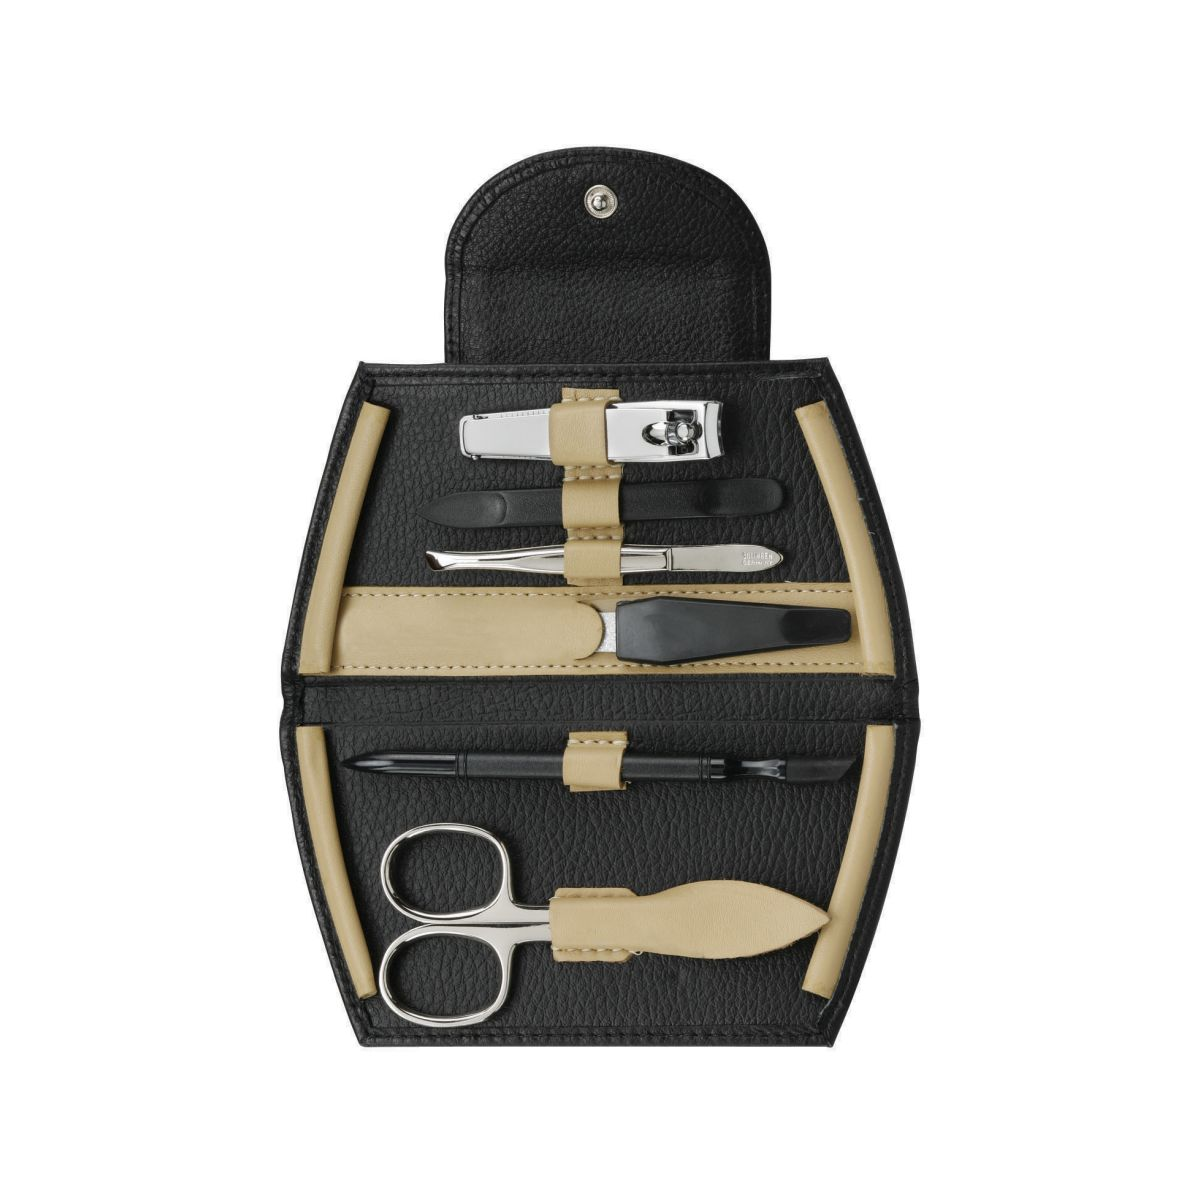 73043 open 2 - Luxurious Black and Cream German Manicure with Precision Solingen Implements - 73043BLK